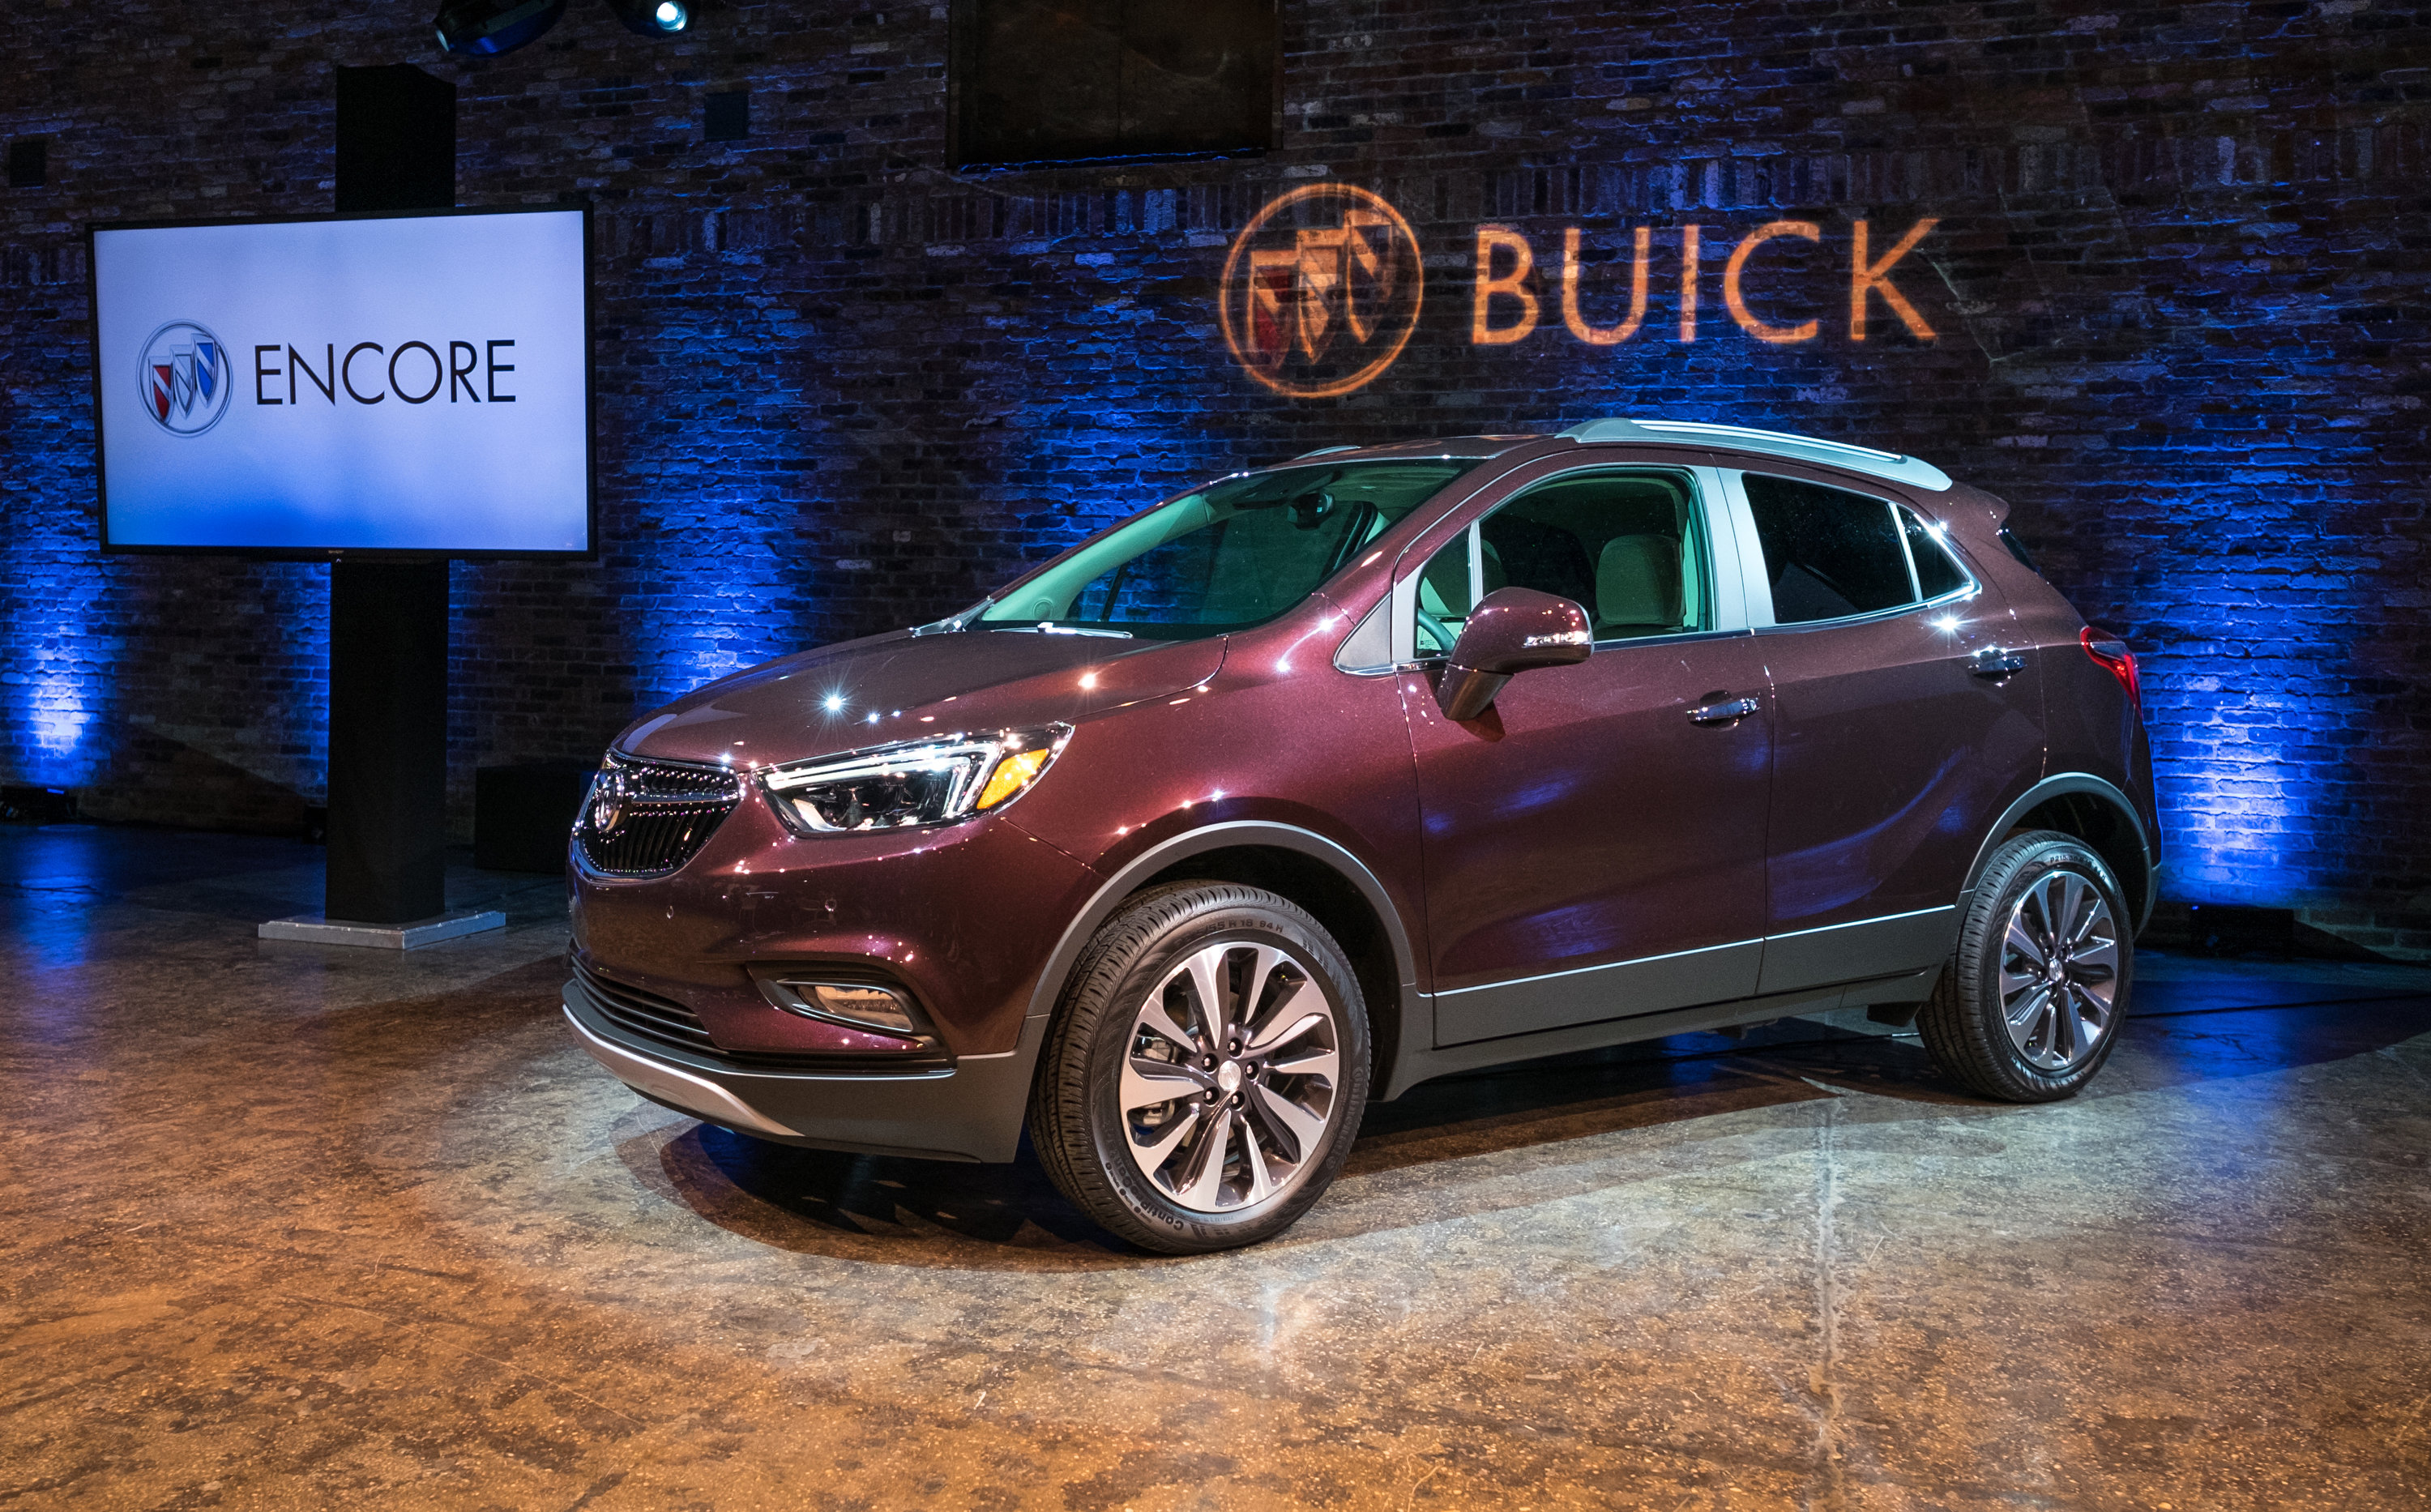 eagle for buick gmc find details contact lease crossover at us buickenvision sale envision the luxury new